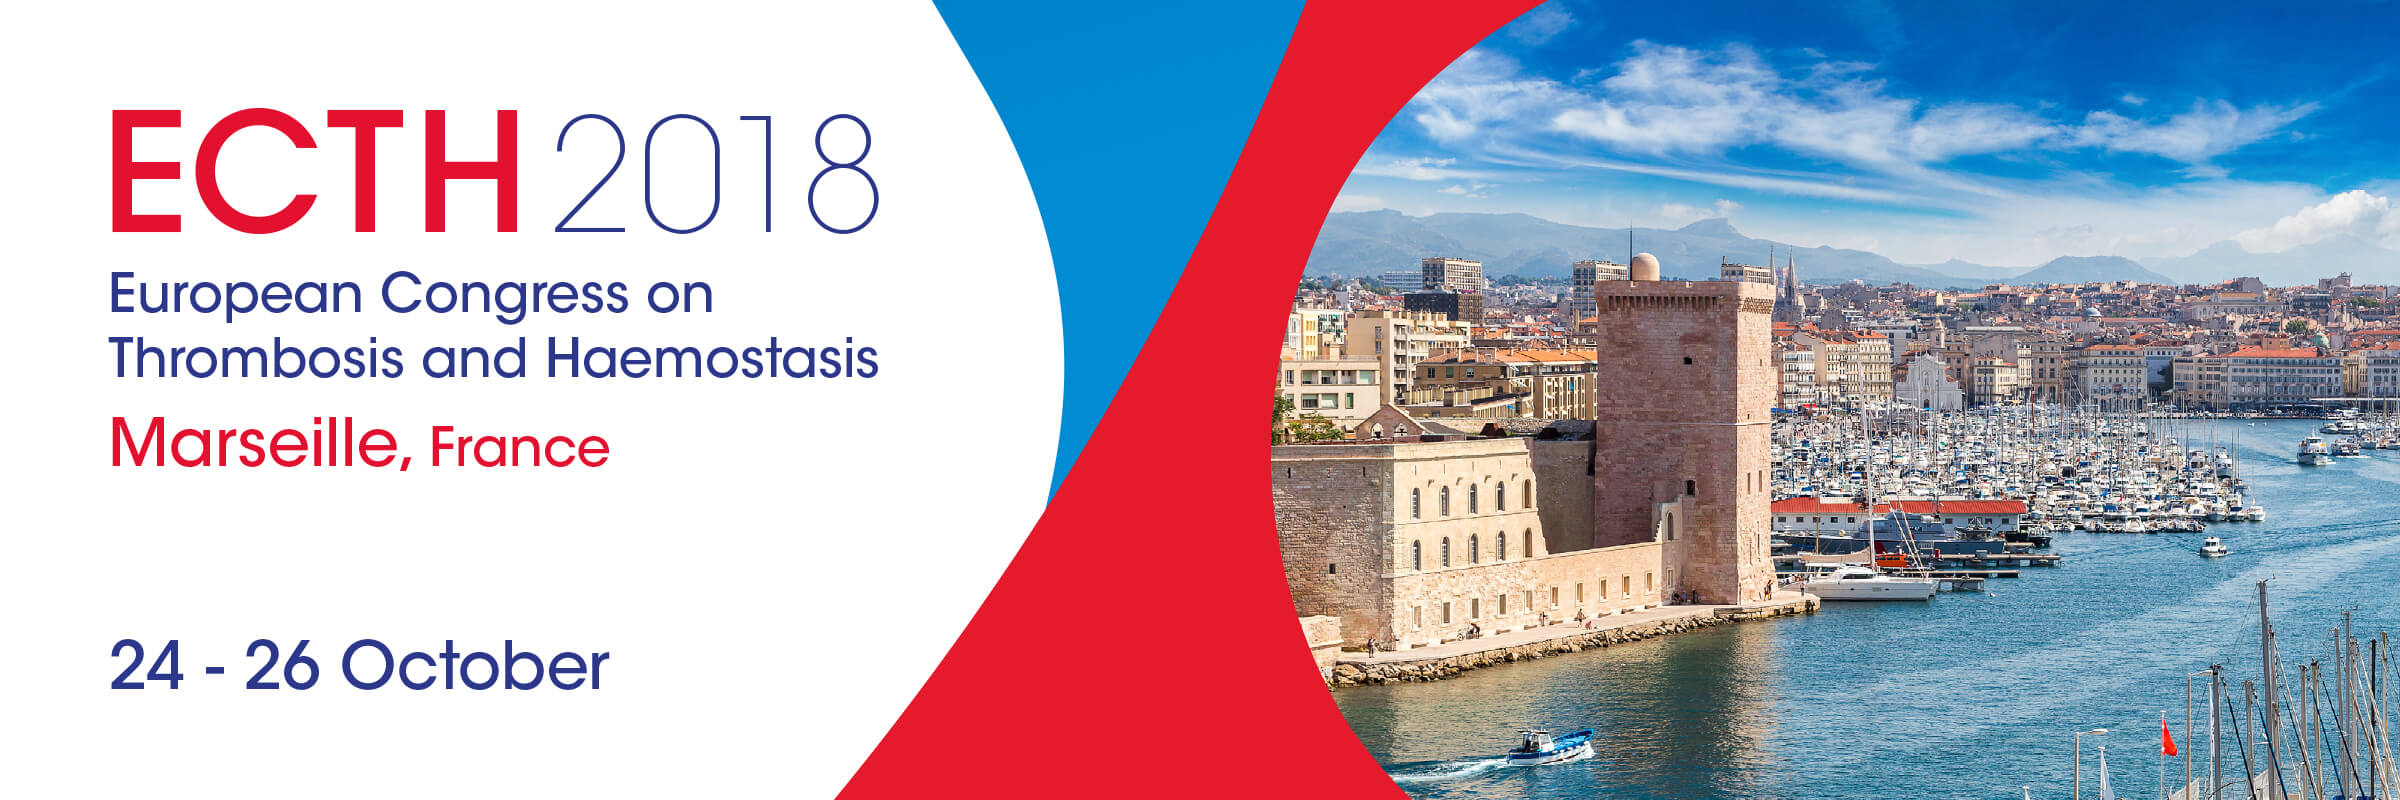 2nd European Congress on Thrombosis and Haemostasis